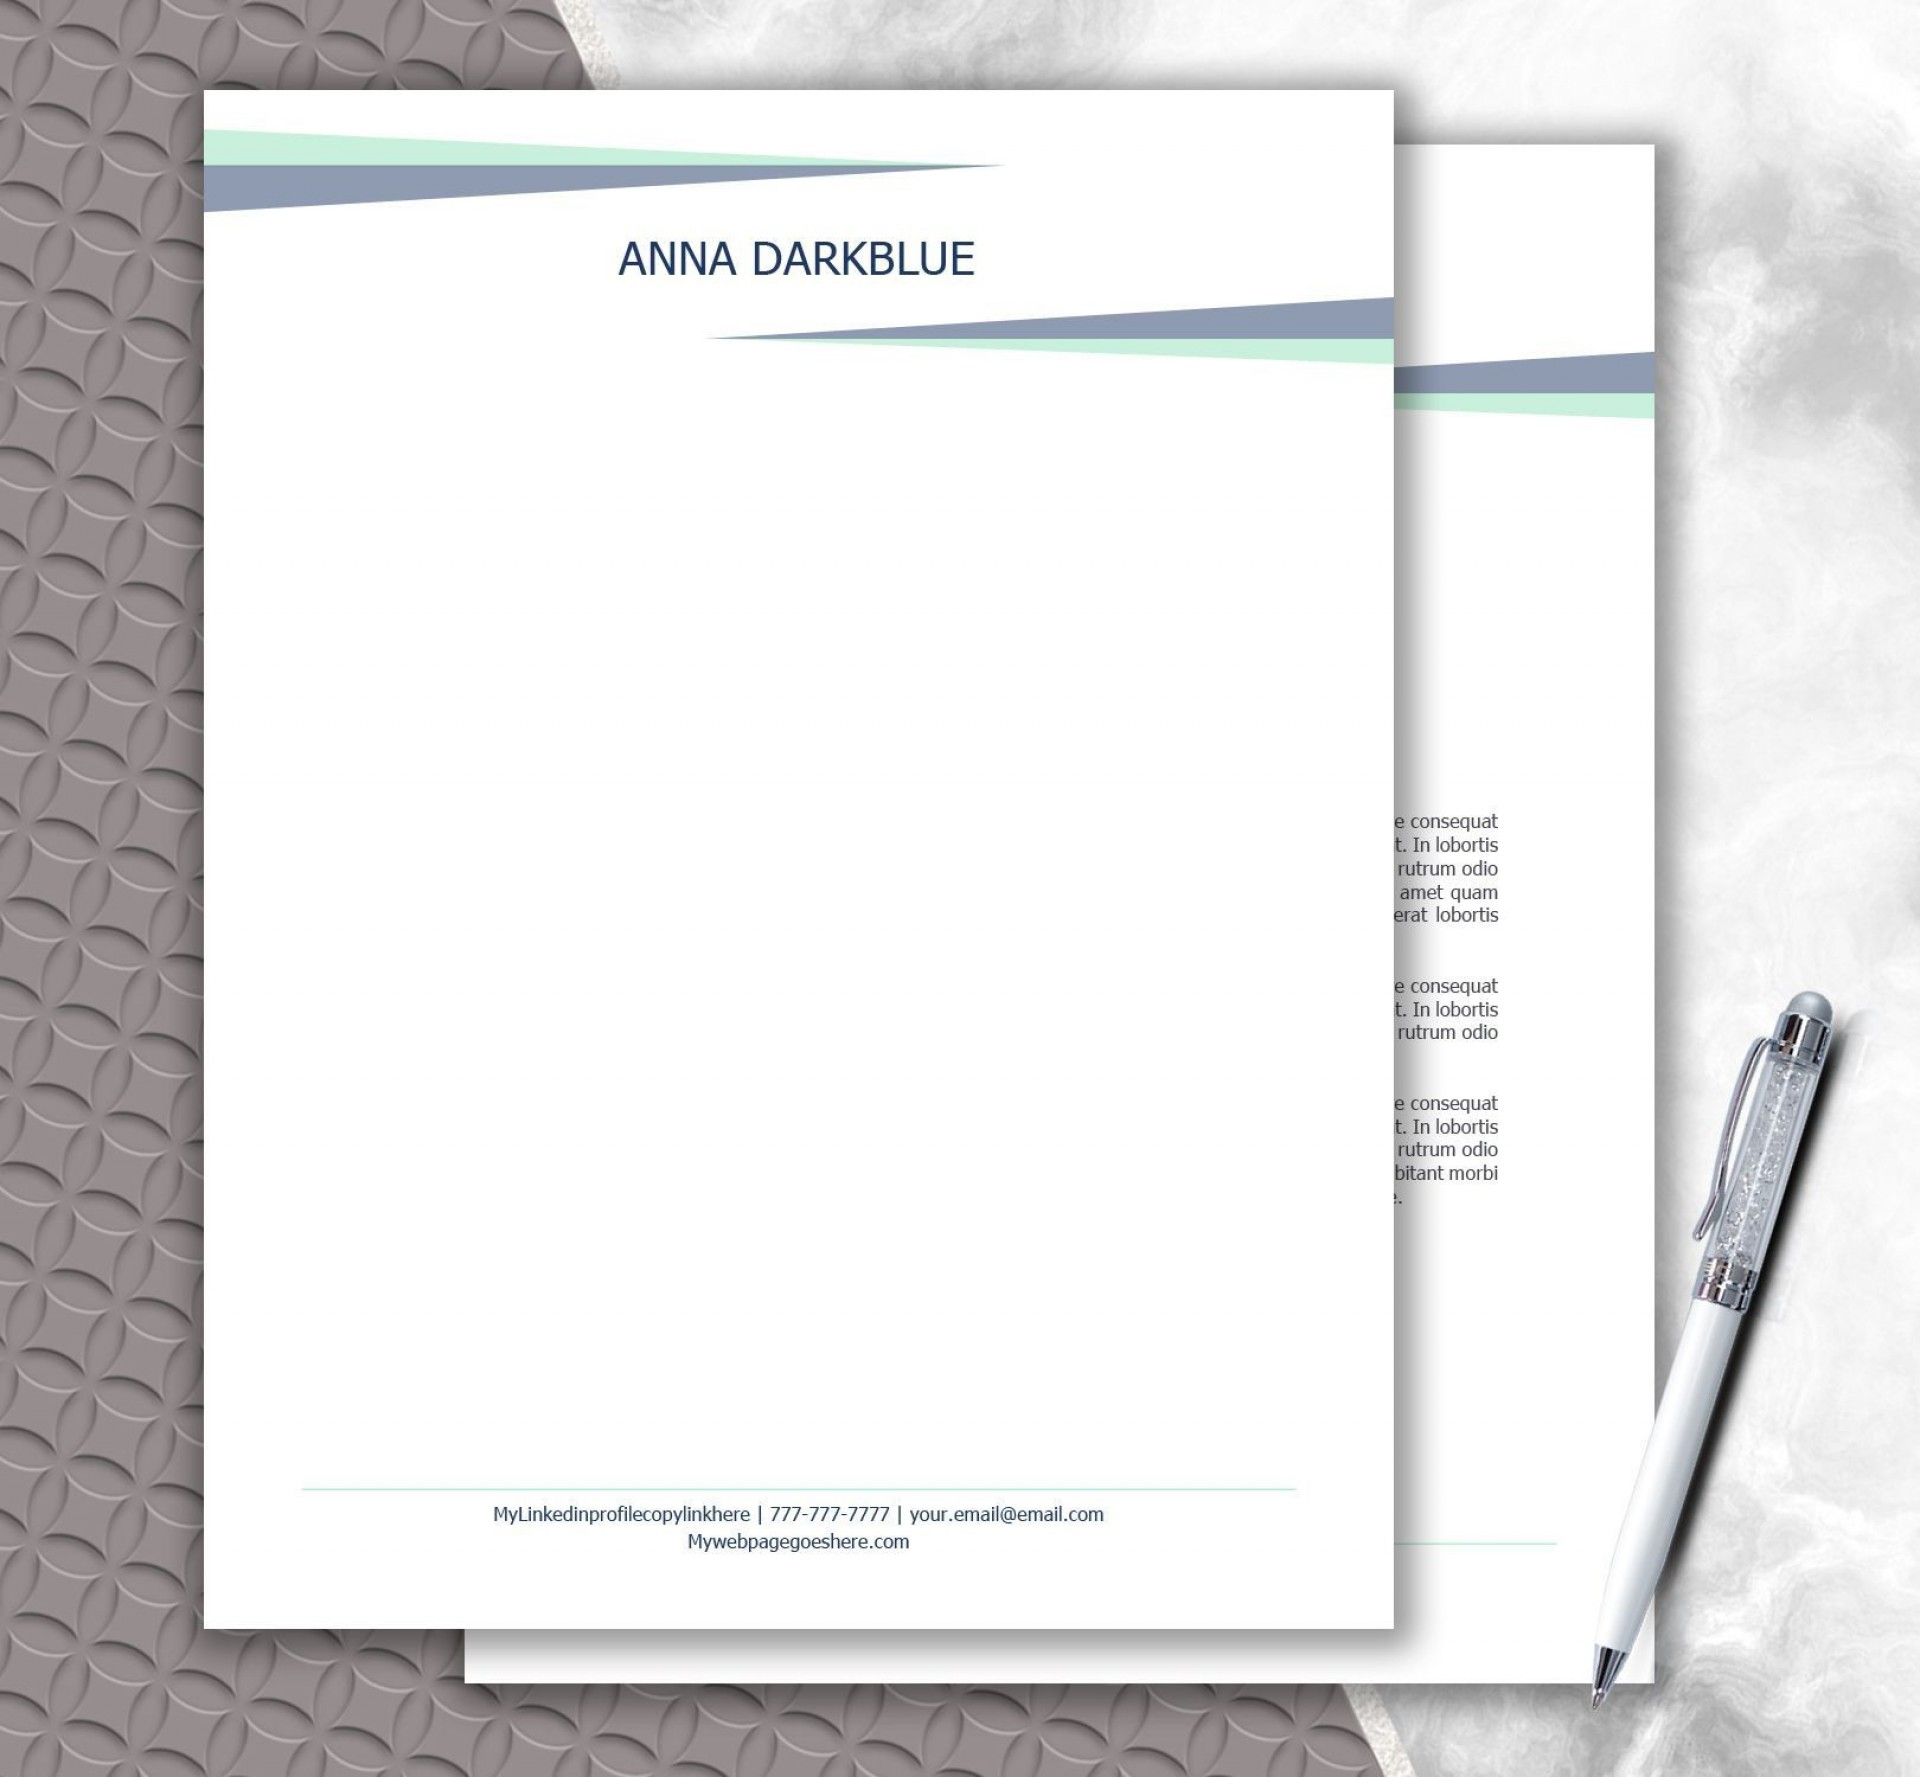 003 Unforgettable Letterhead Format In Word 2007 Free Download Photo  Company Template1920